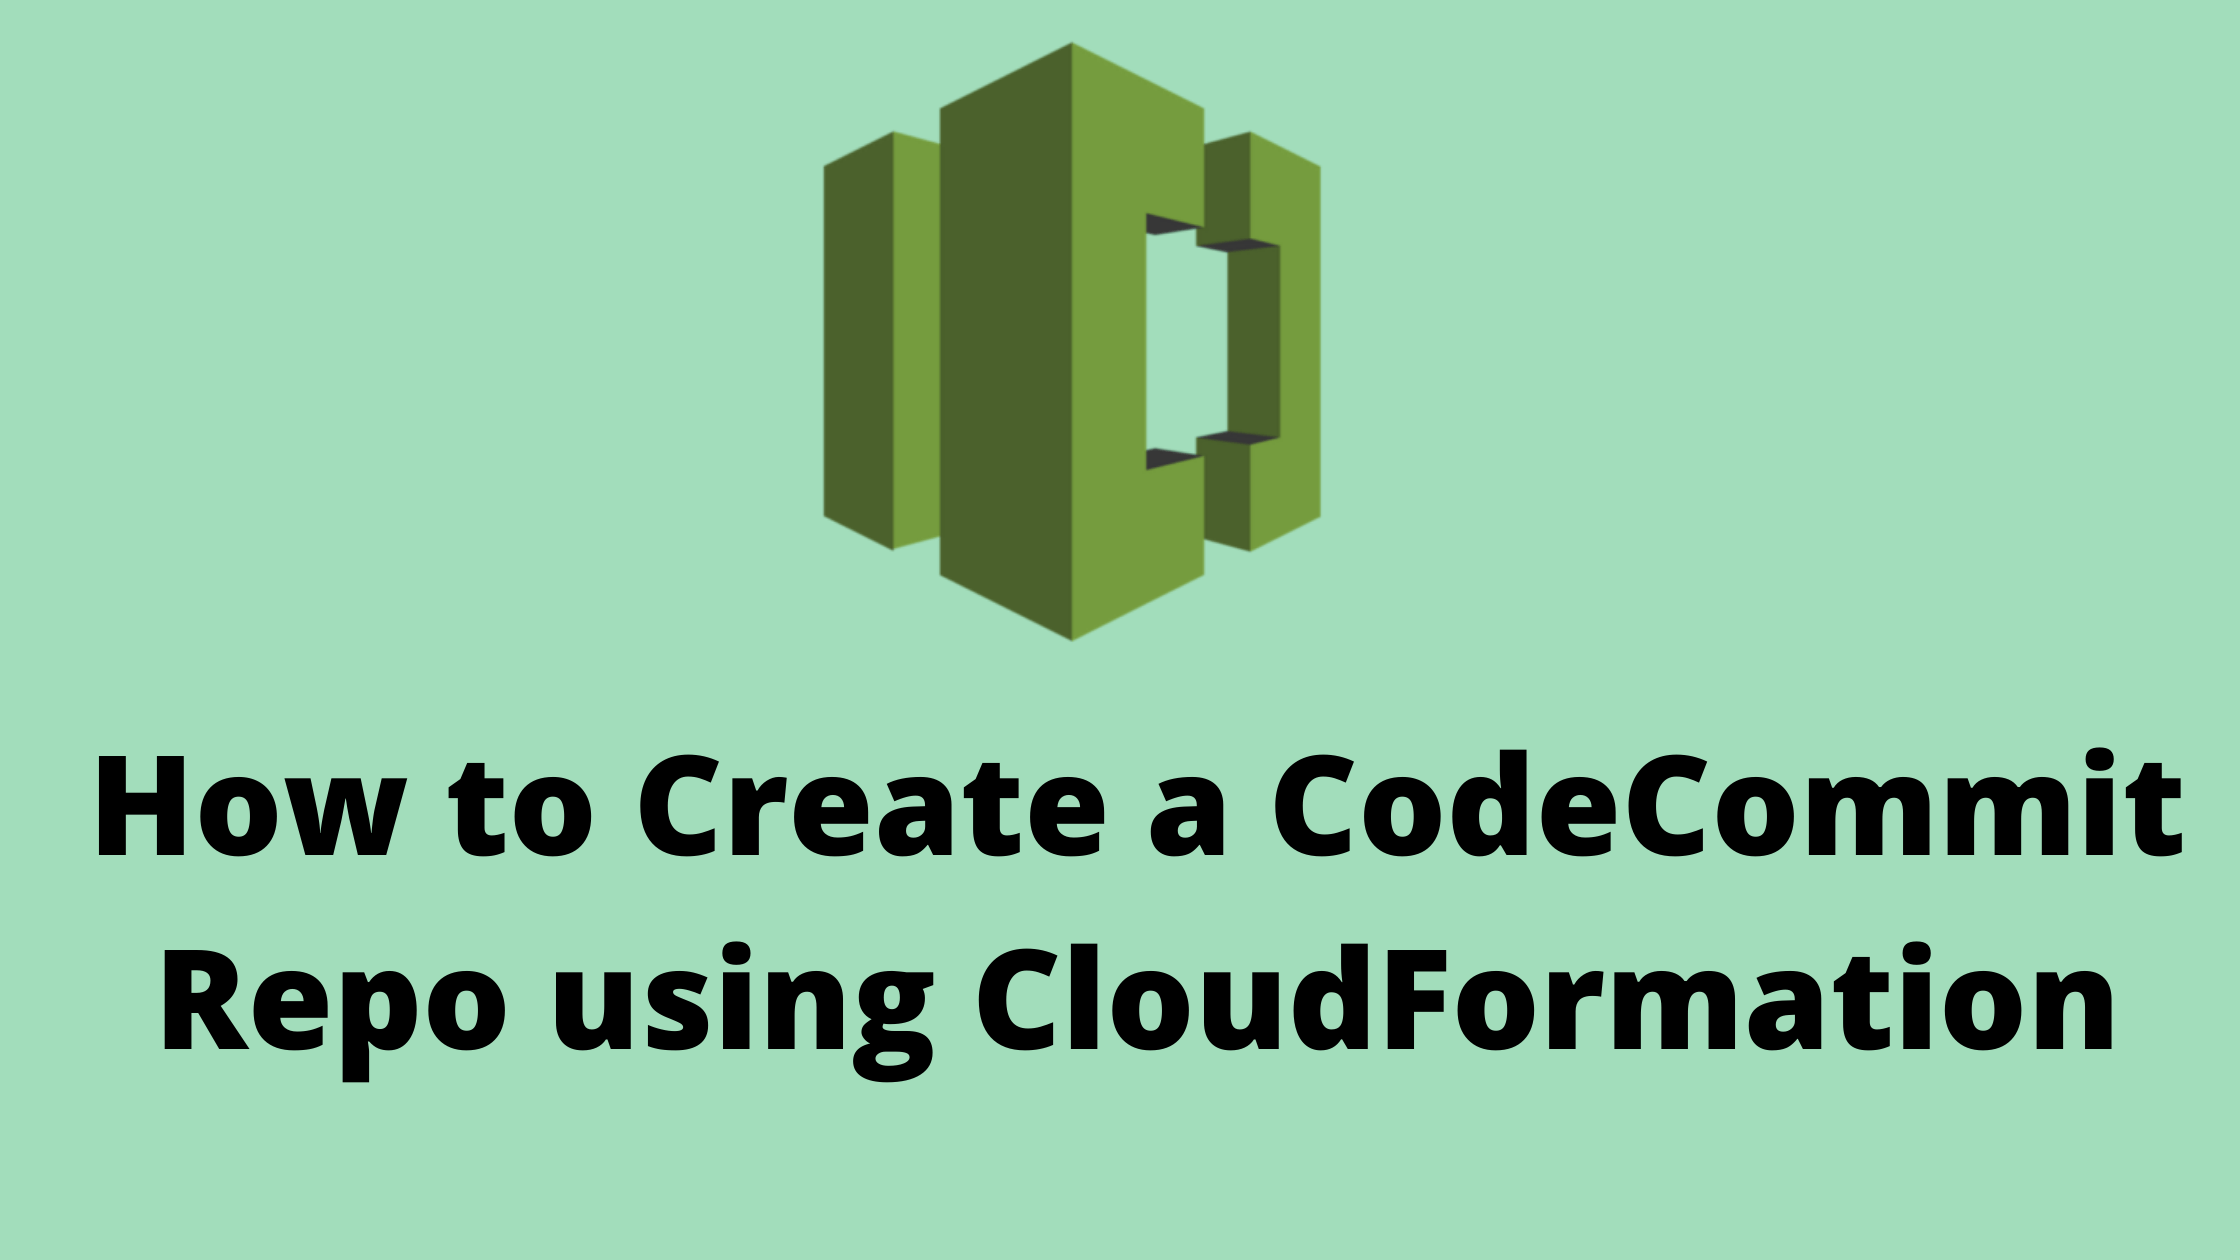 Create a CodeCommit repo using CloudFormation